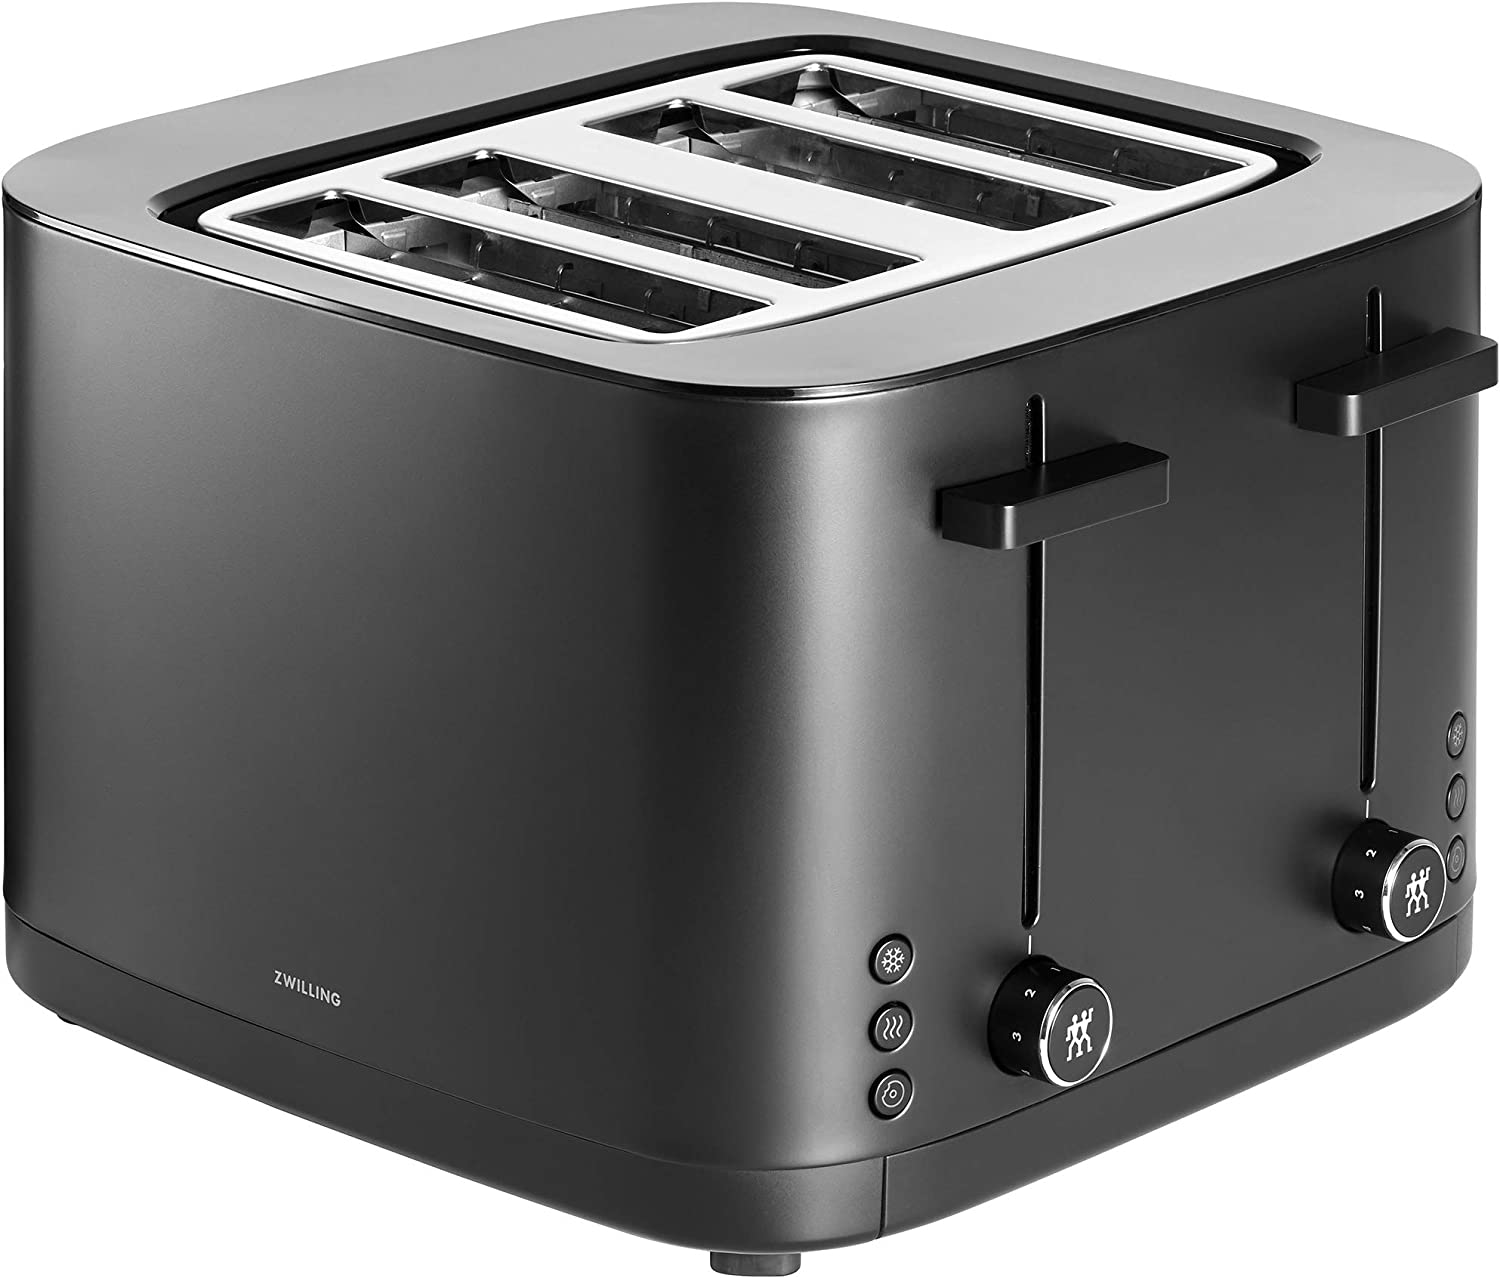 Zwilling Enfinigy Toaster 4 Slice with Extra Wide 1.5